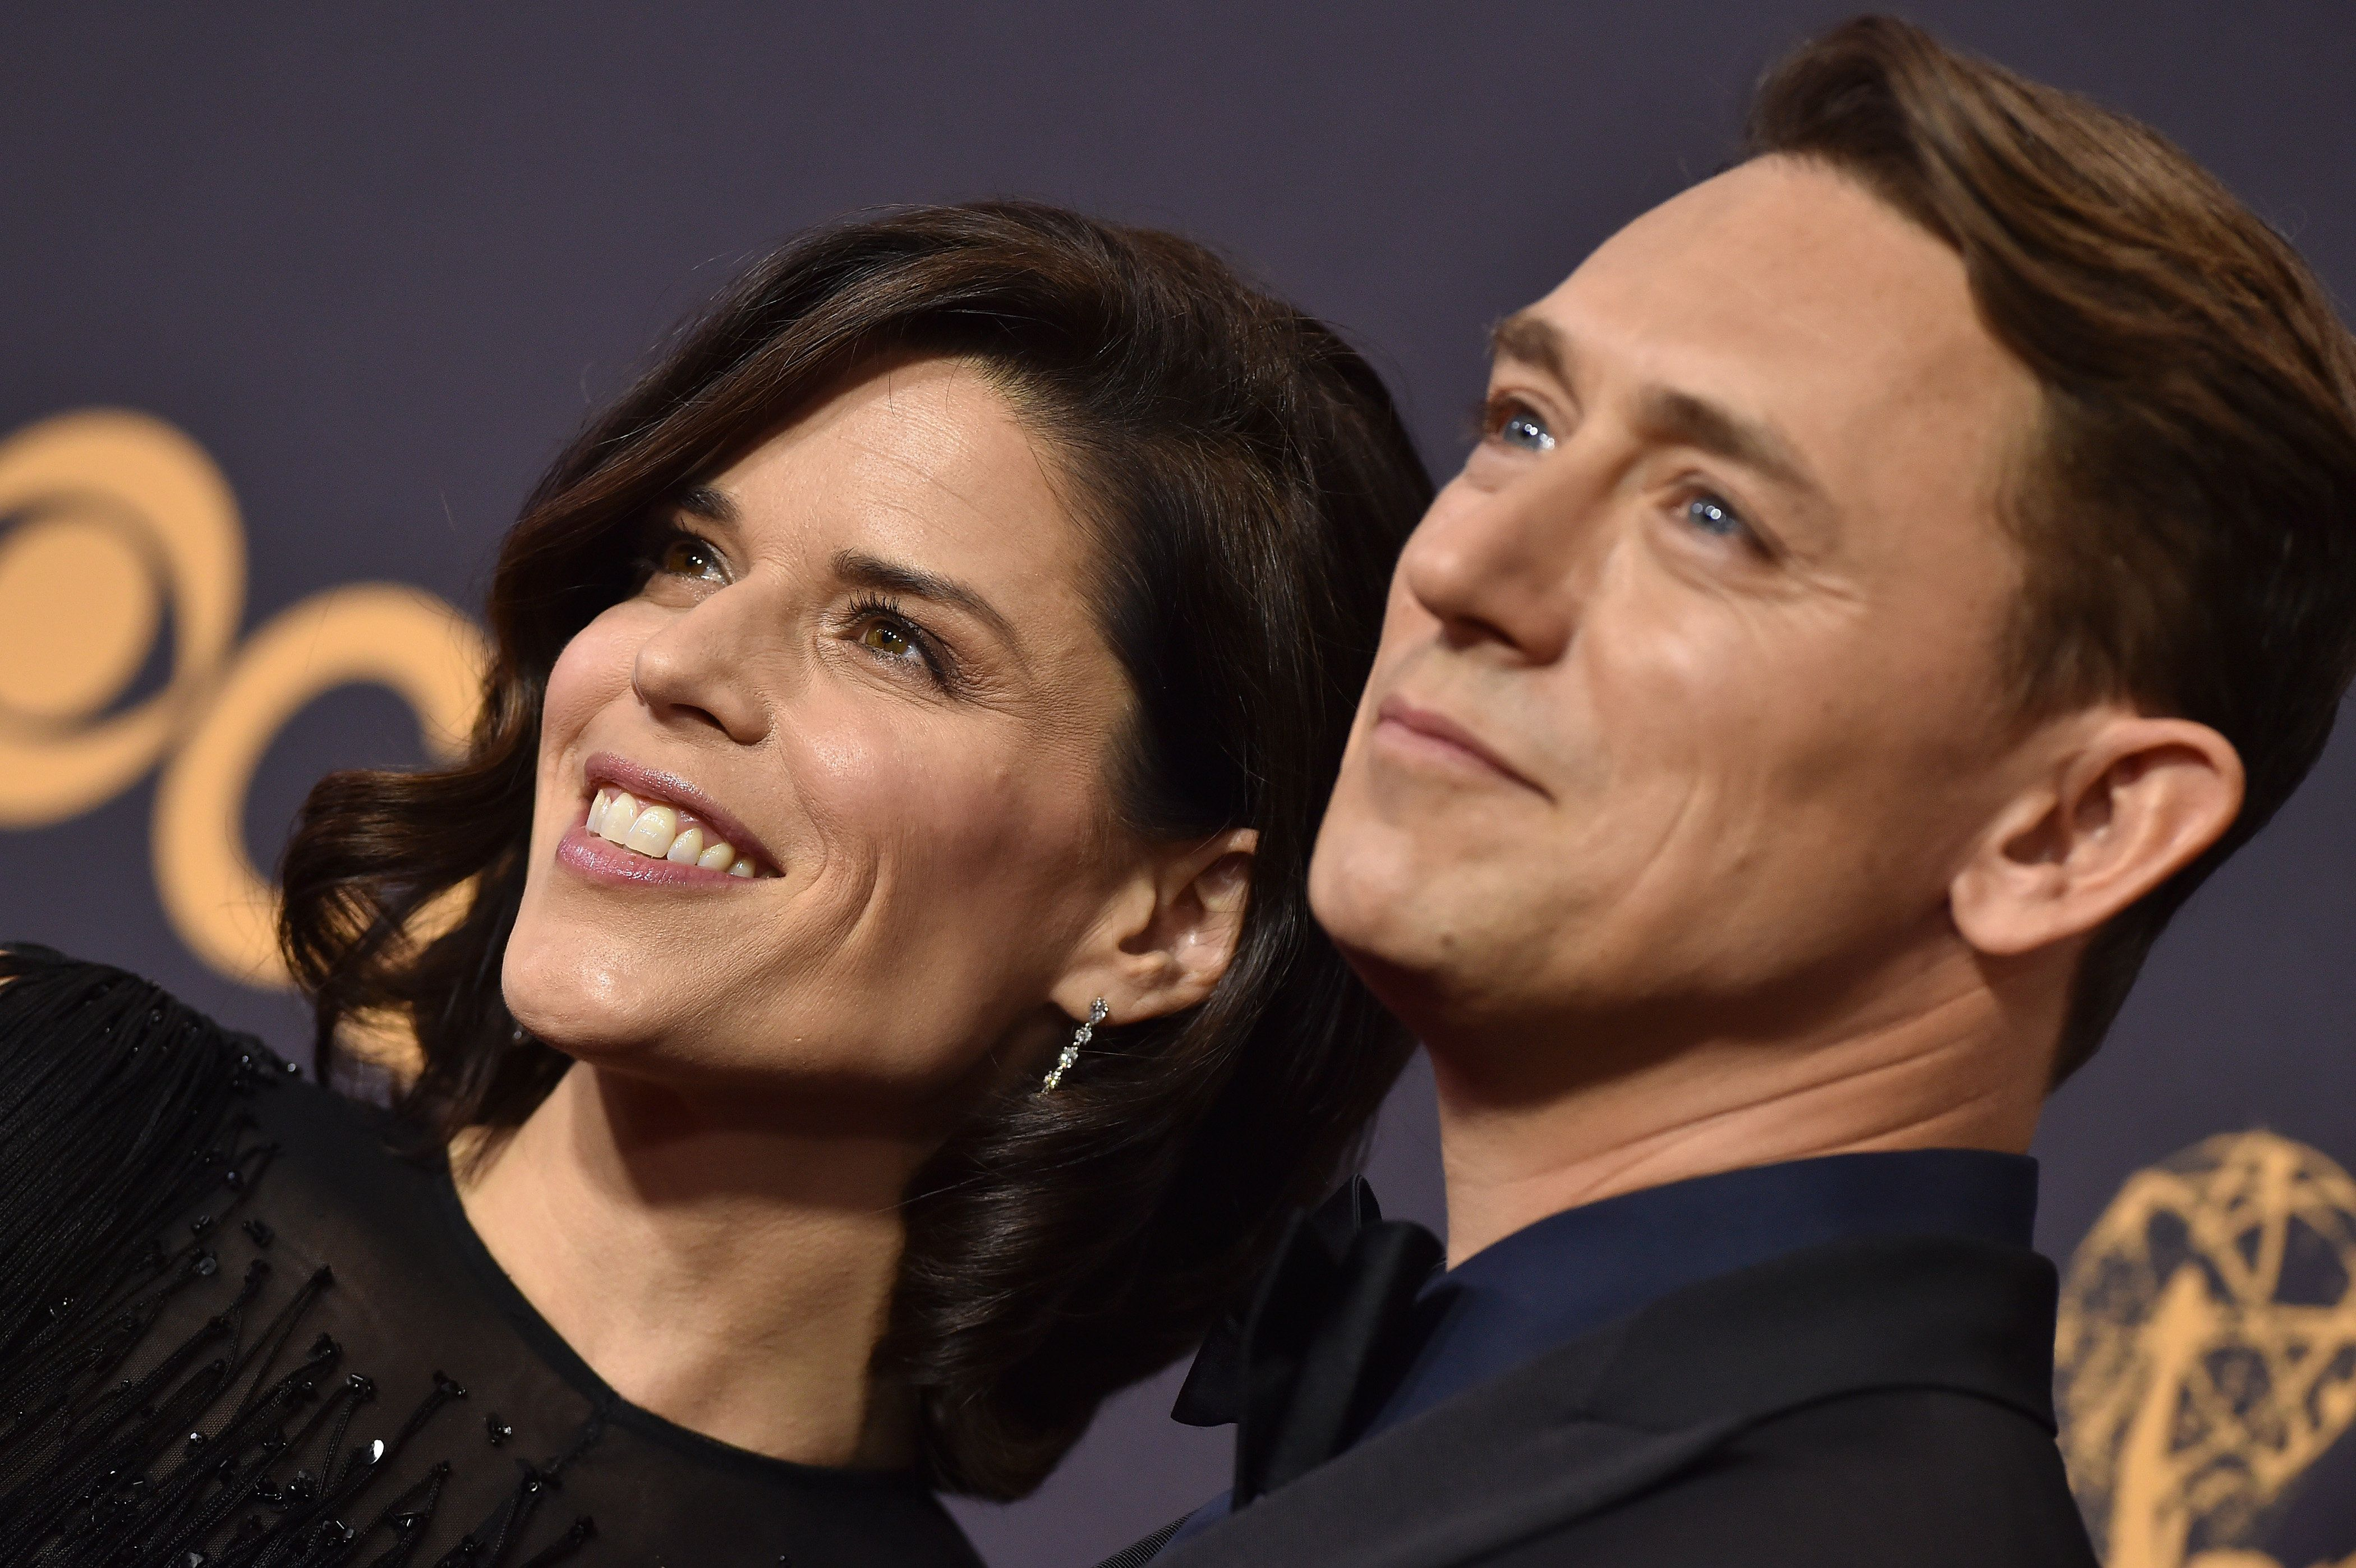 LOS ANGELES, CA - SEPTEMBER 17:  Actress Neve Campbell and JJ Feild arrive at the 69th Annual Primetime Emmy Awards at Microsoft Theater on September 17, 2017 in Los Angeles, California.  (Photo by Axelle/Bauer-Griffin/FilmMagic)